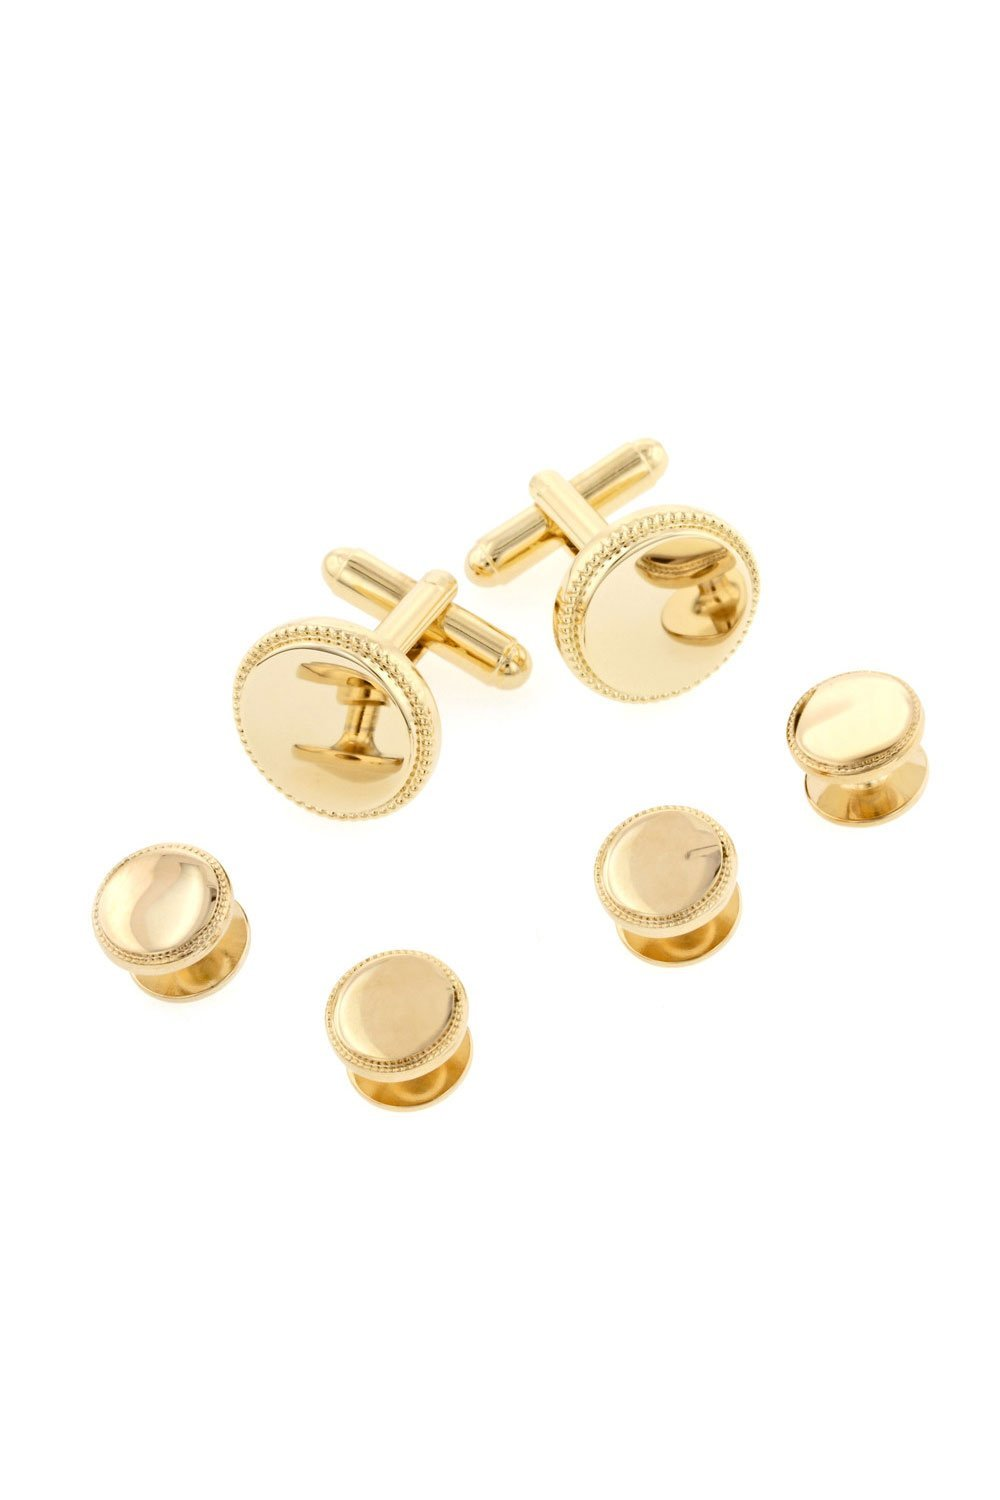 Beaded Edge Gold Studs and Cufflinks Set